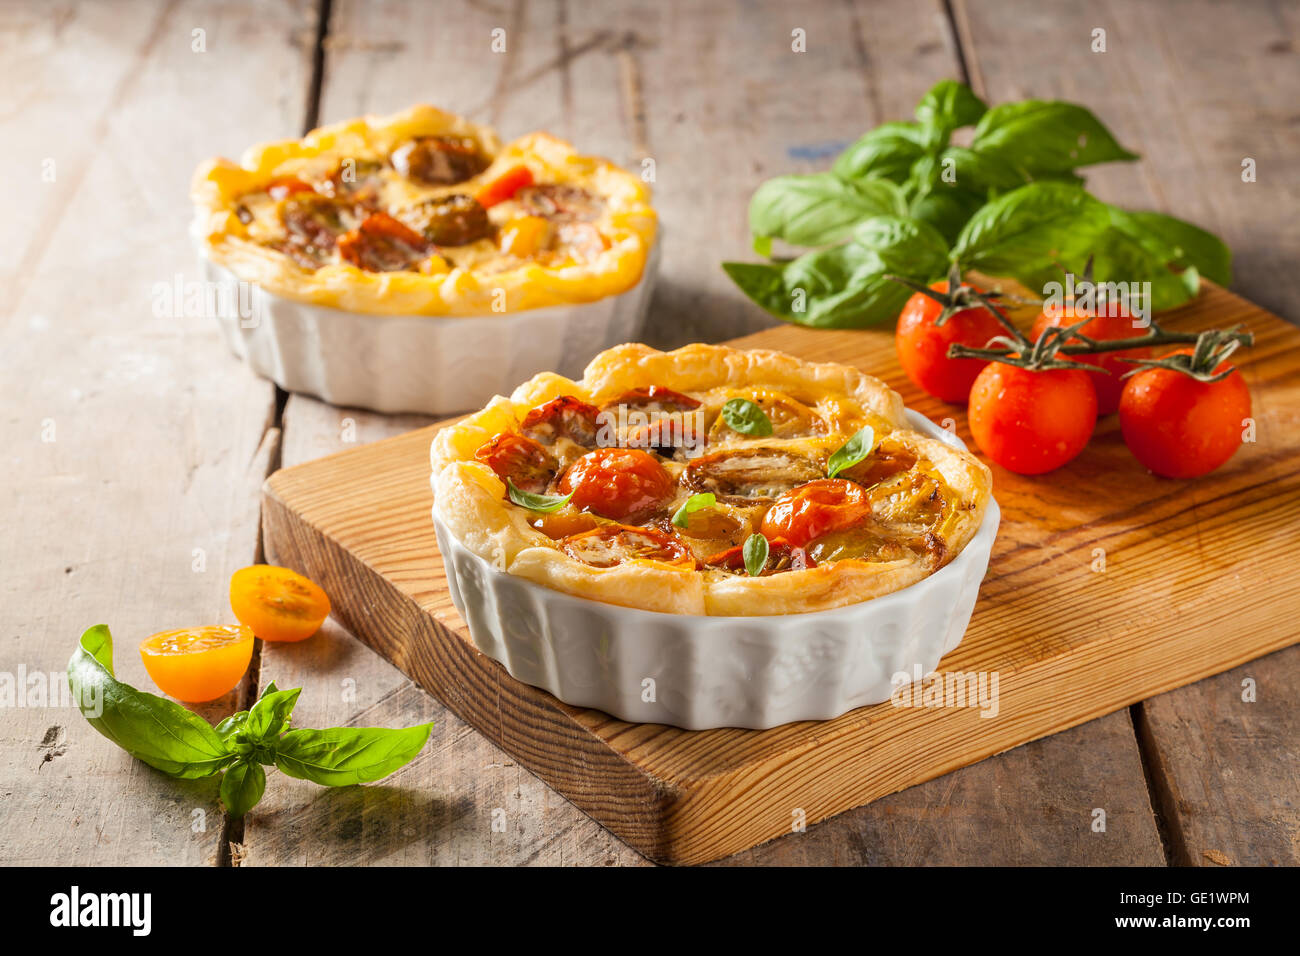 Quiche with cherry tomatoes on a rustic wooden table. - Stock Image